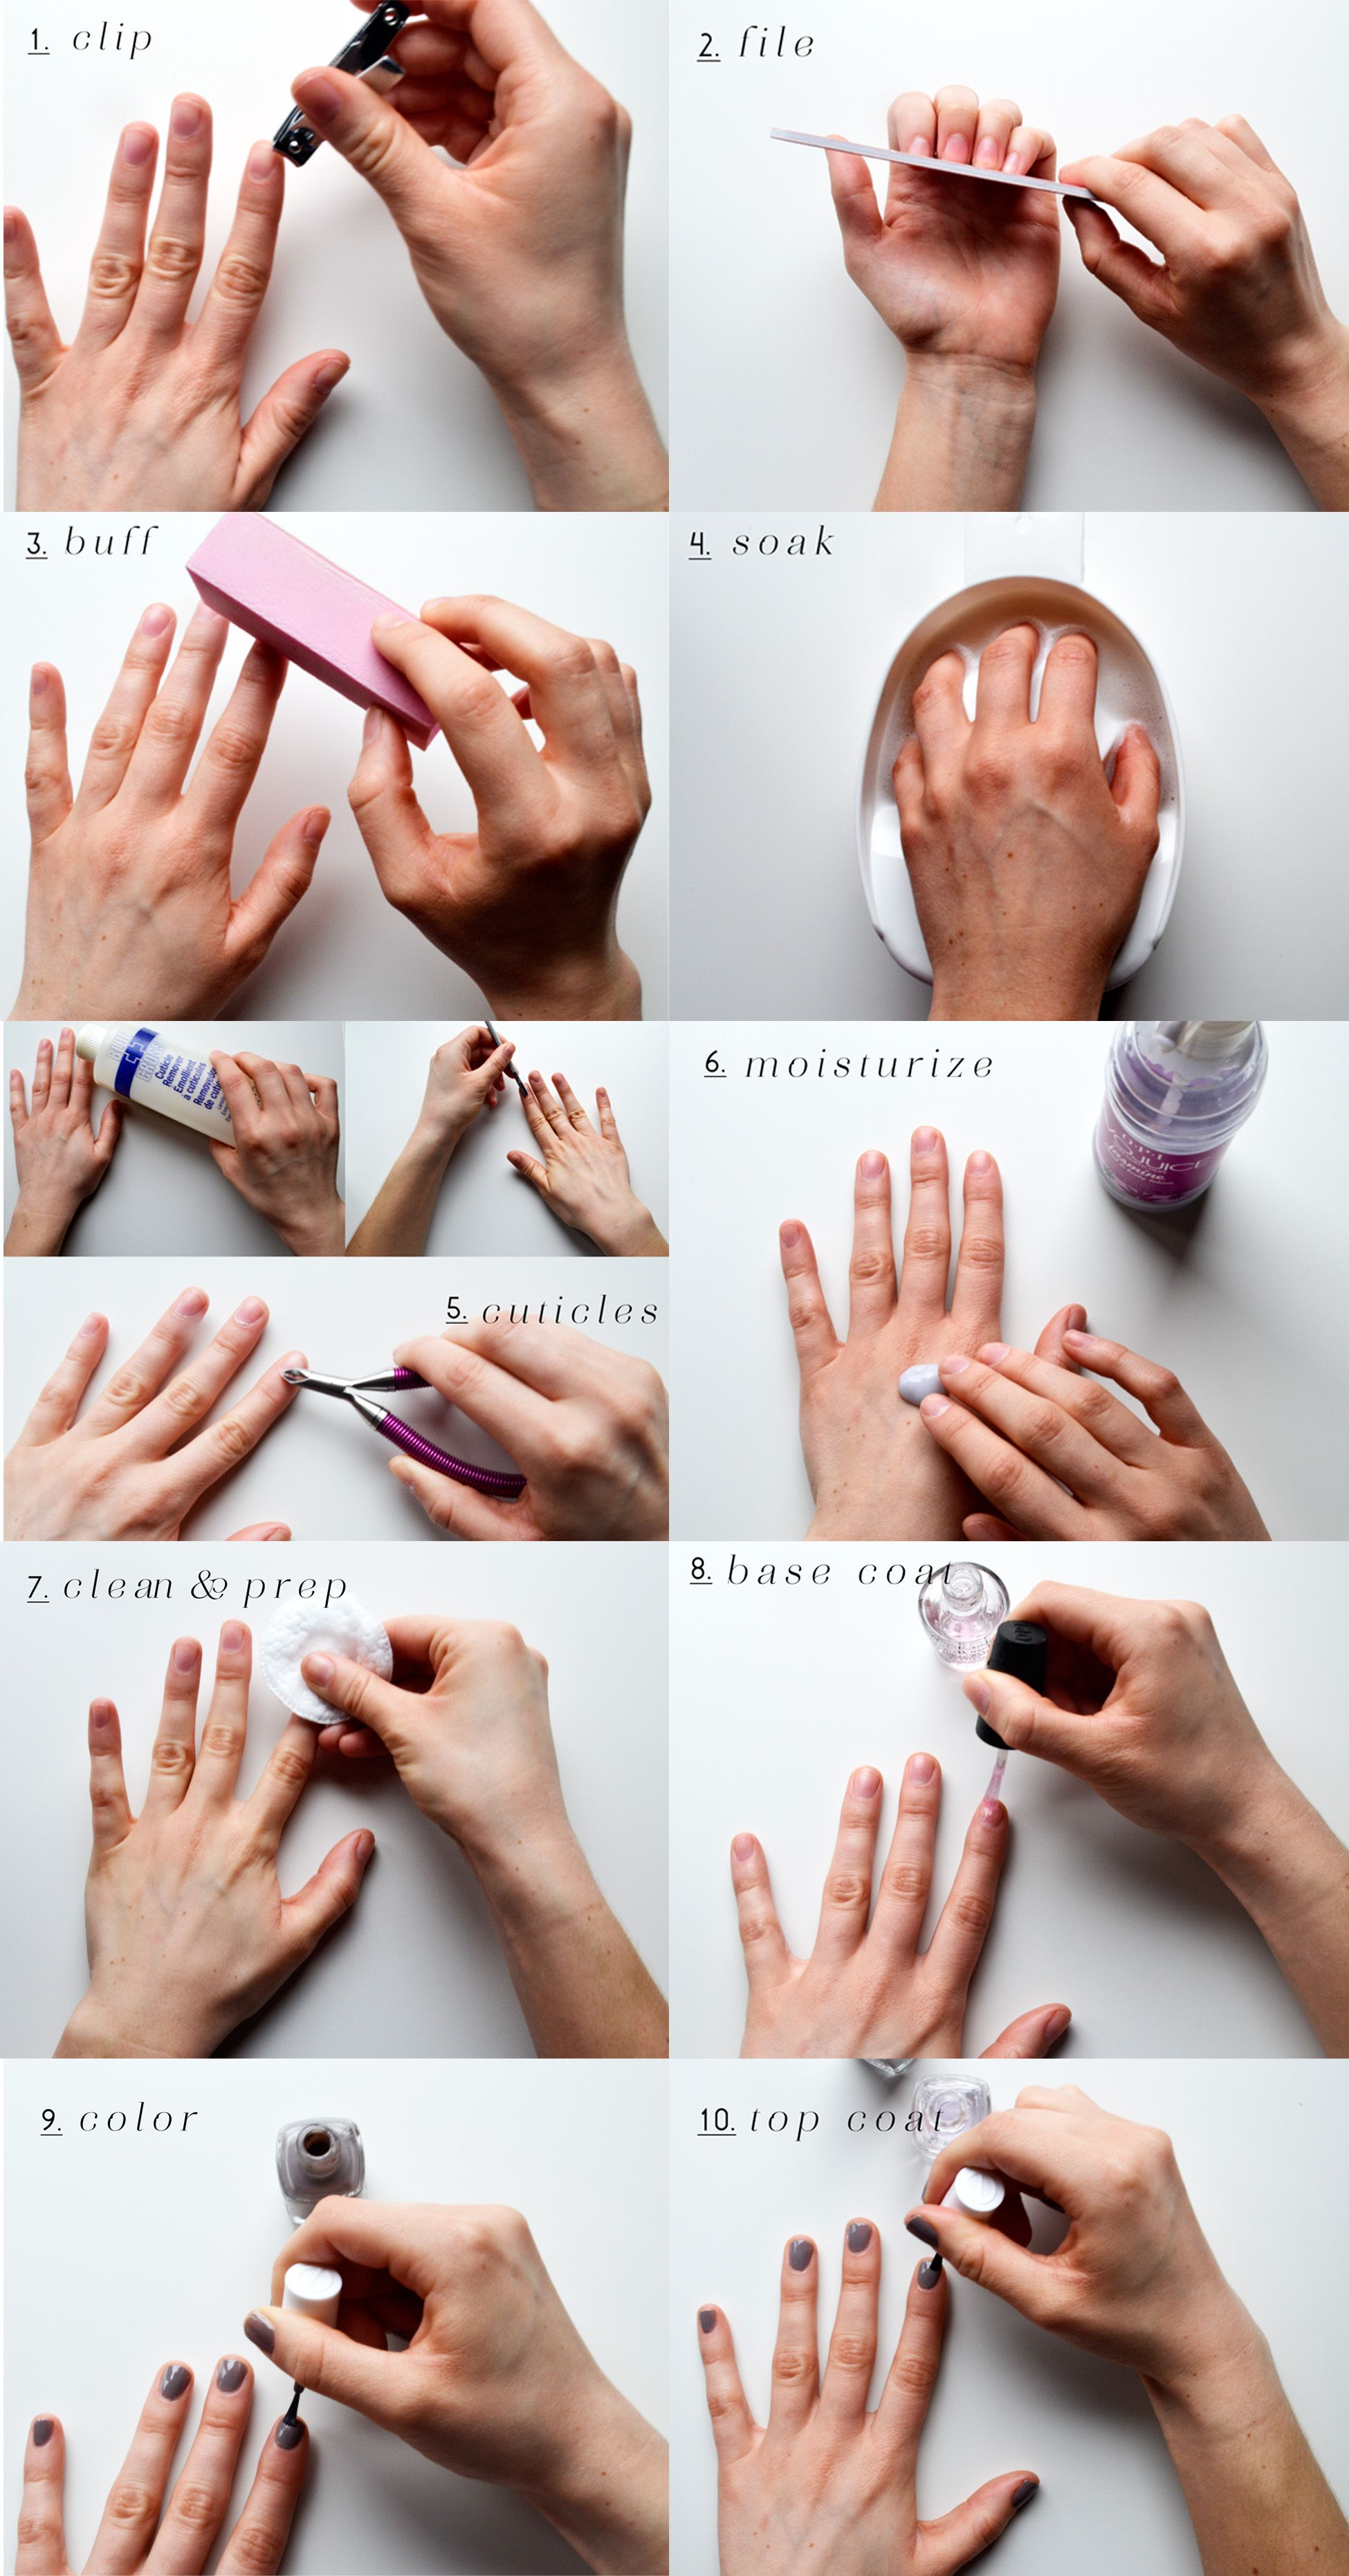 Steps to Follow for a Professional Salon Manicure | Nail Inspo ...